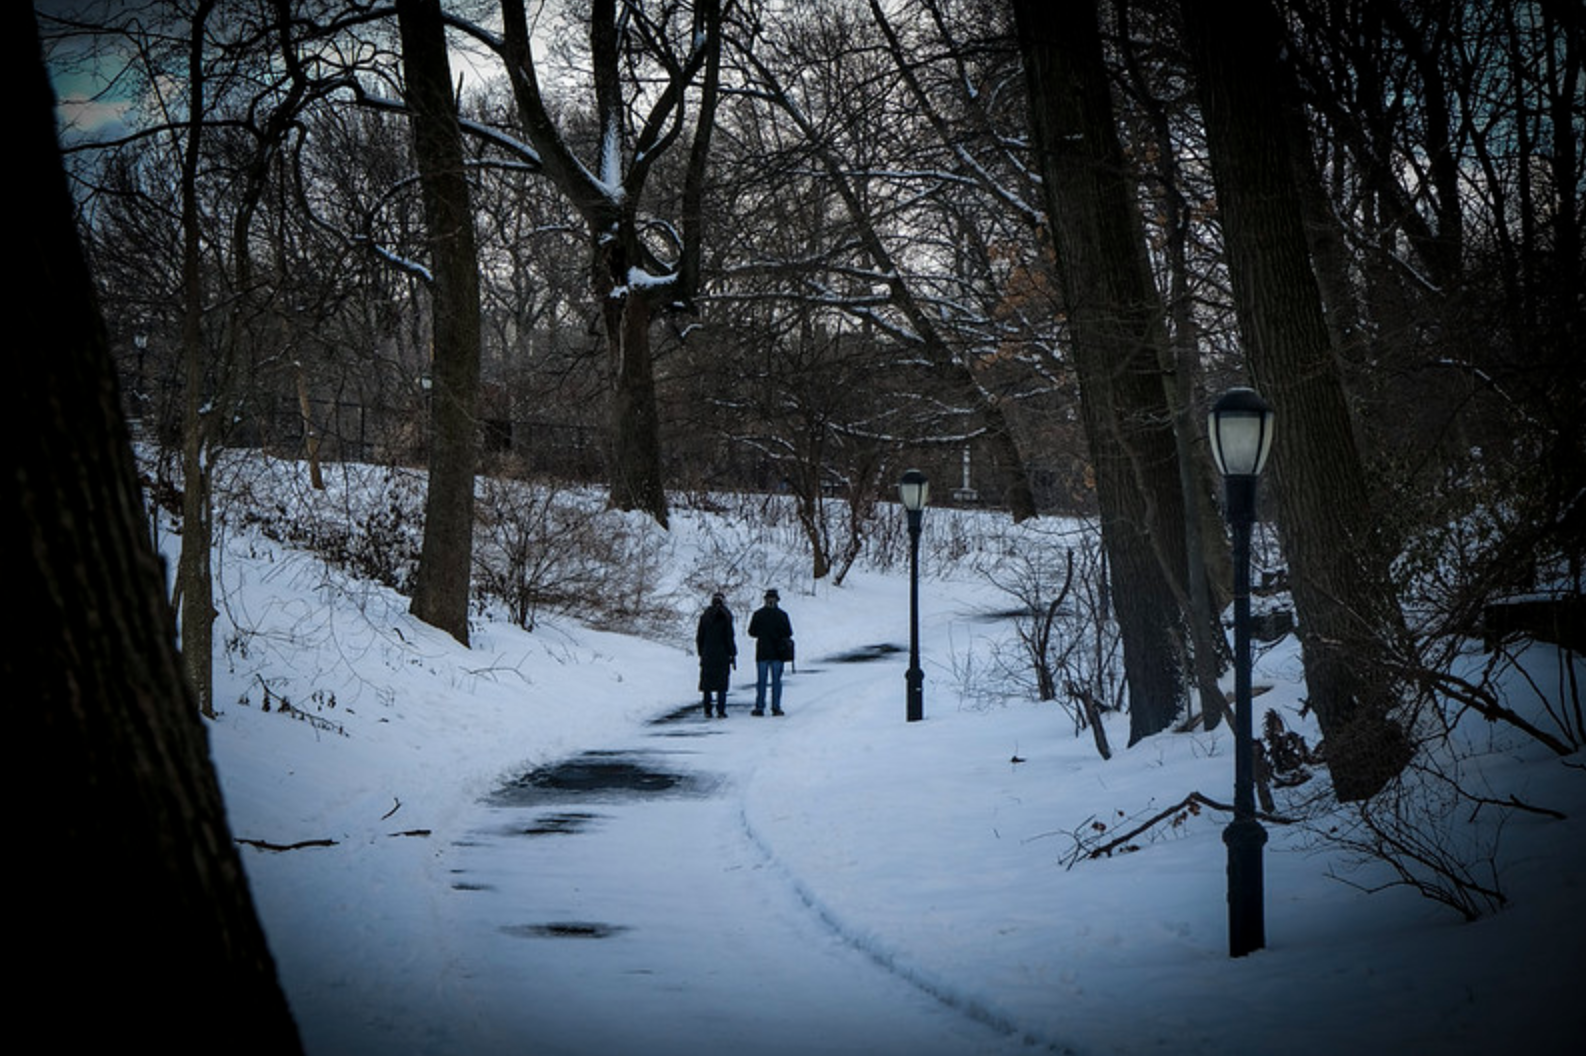 Two people walk on a snowy path winding through trees in Inwood Park.